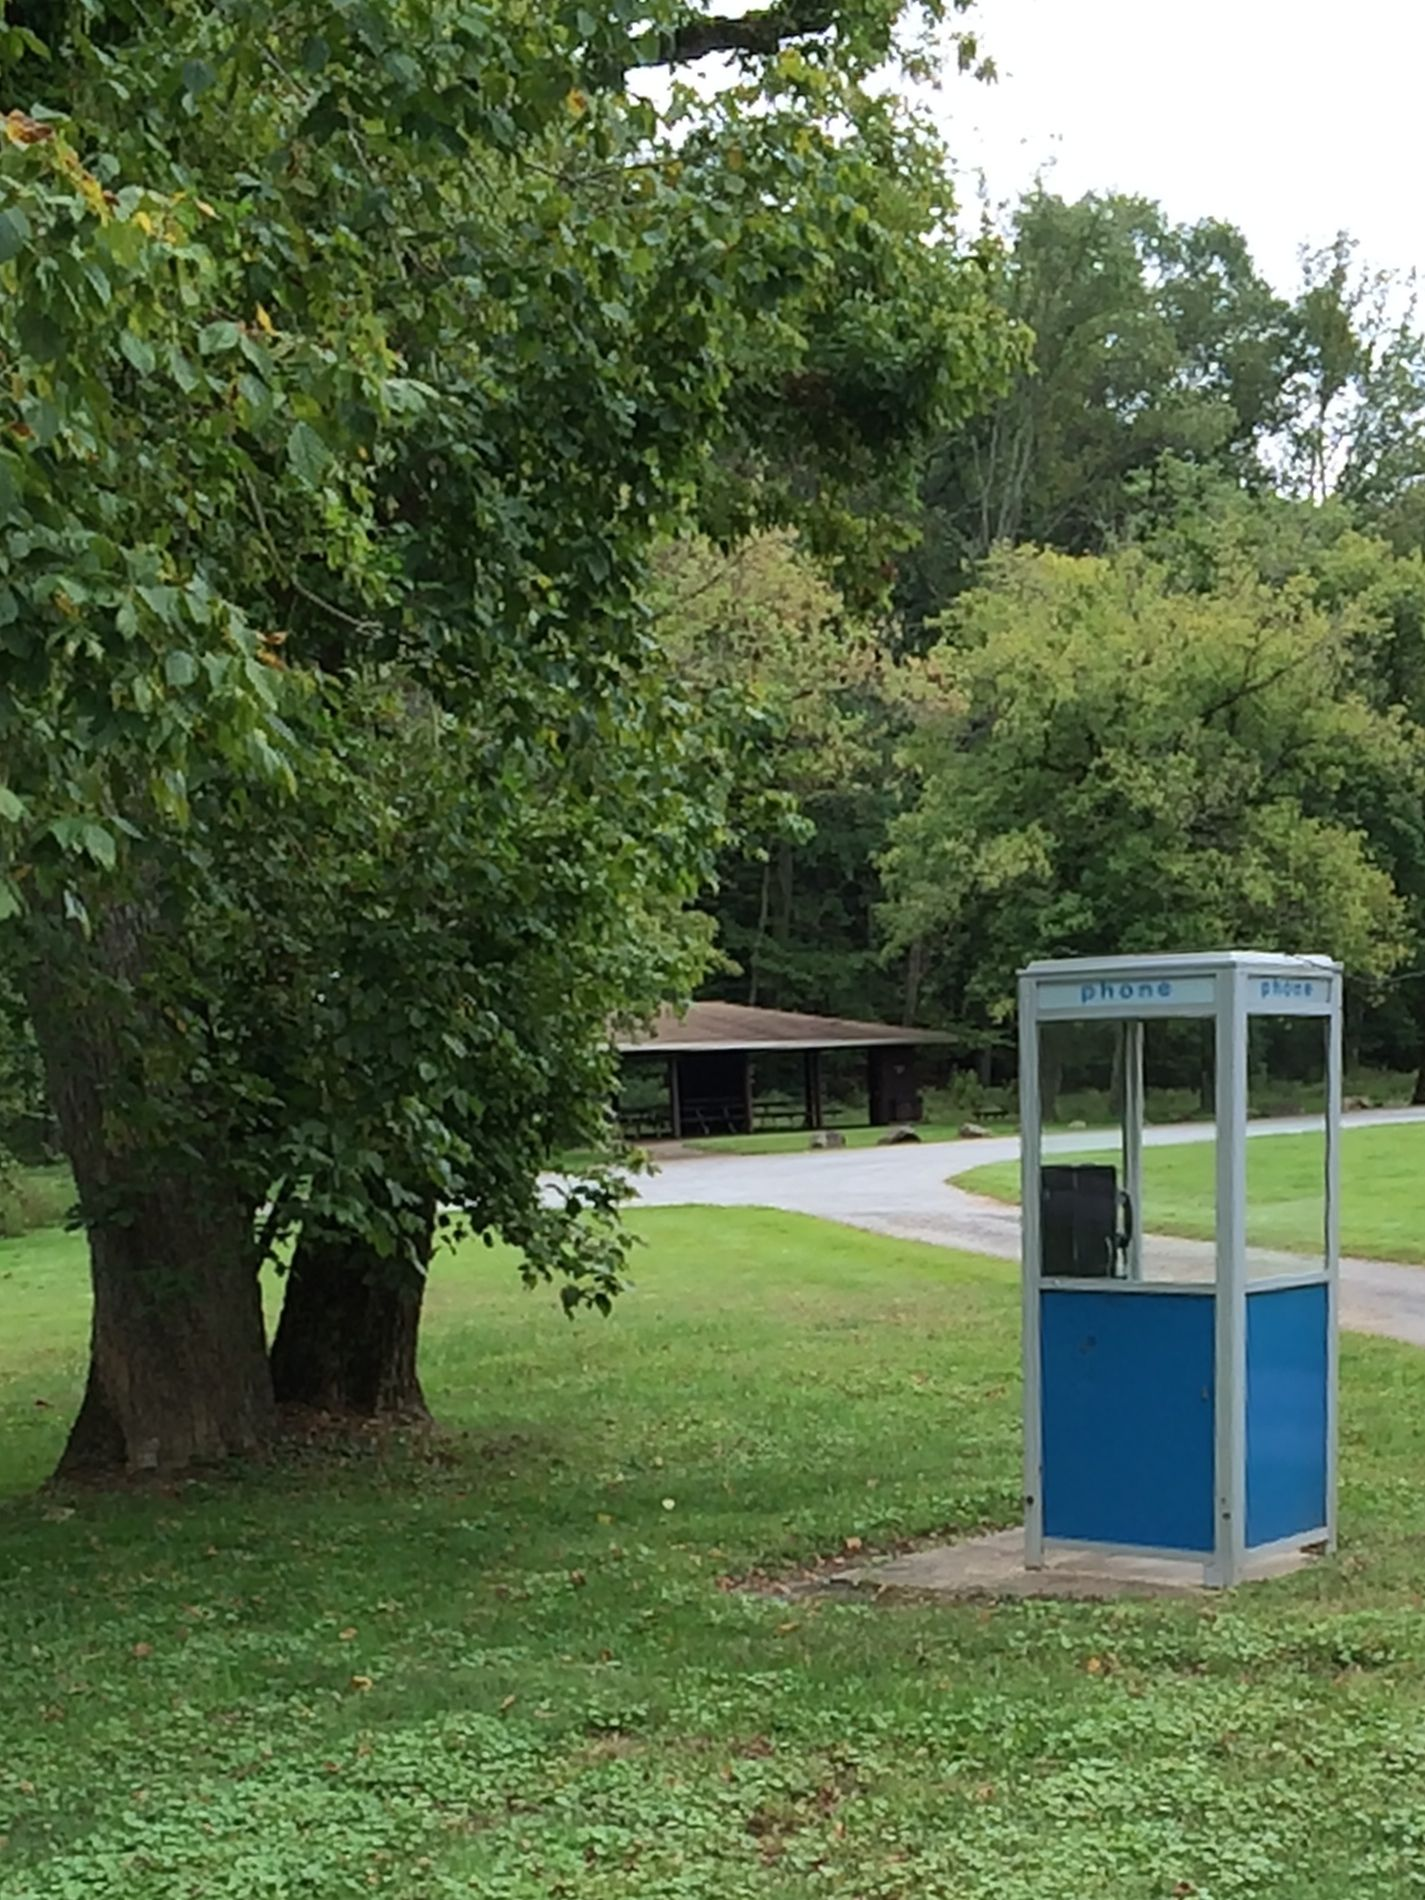 Pequeay phone booth